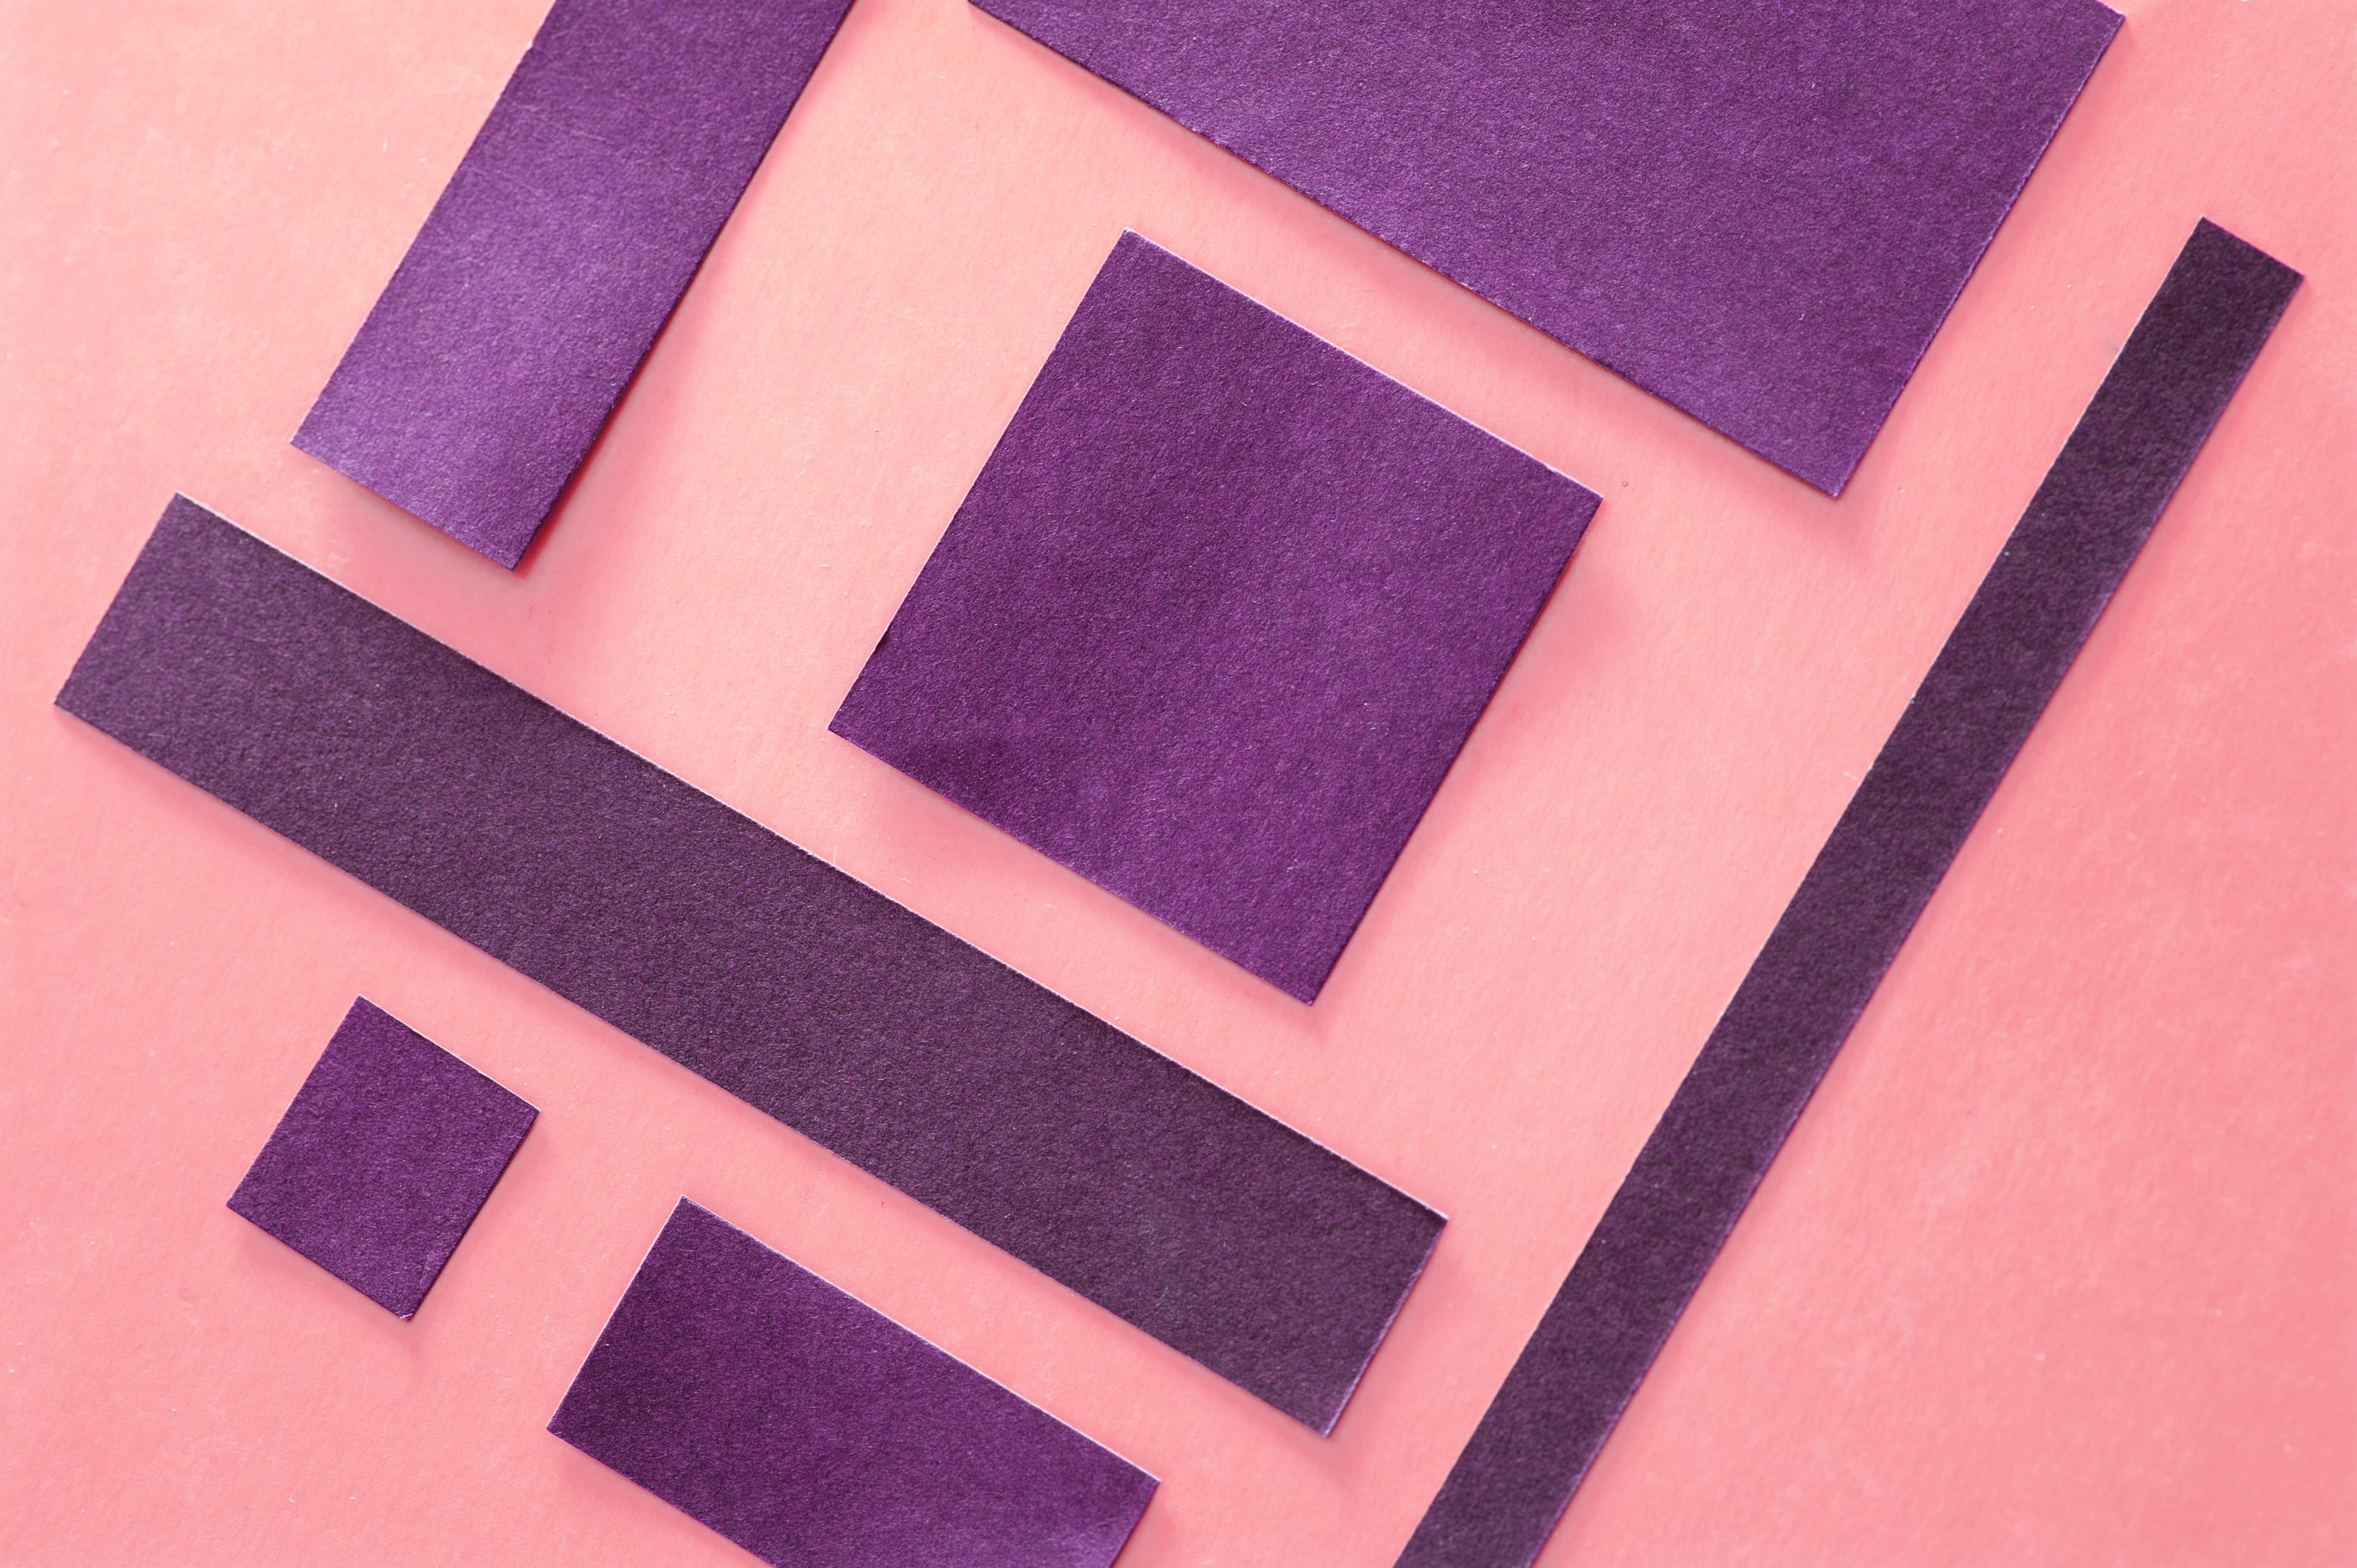 oblique angled squares of paper on a pink background